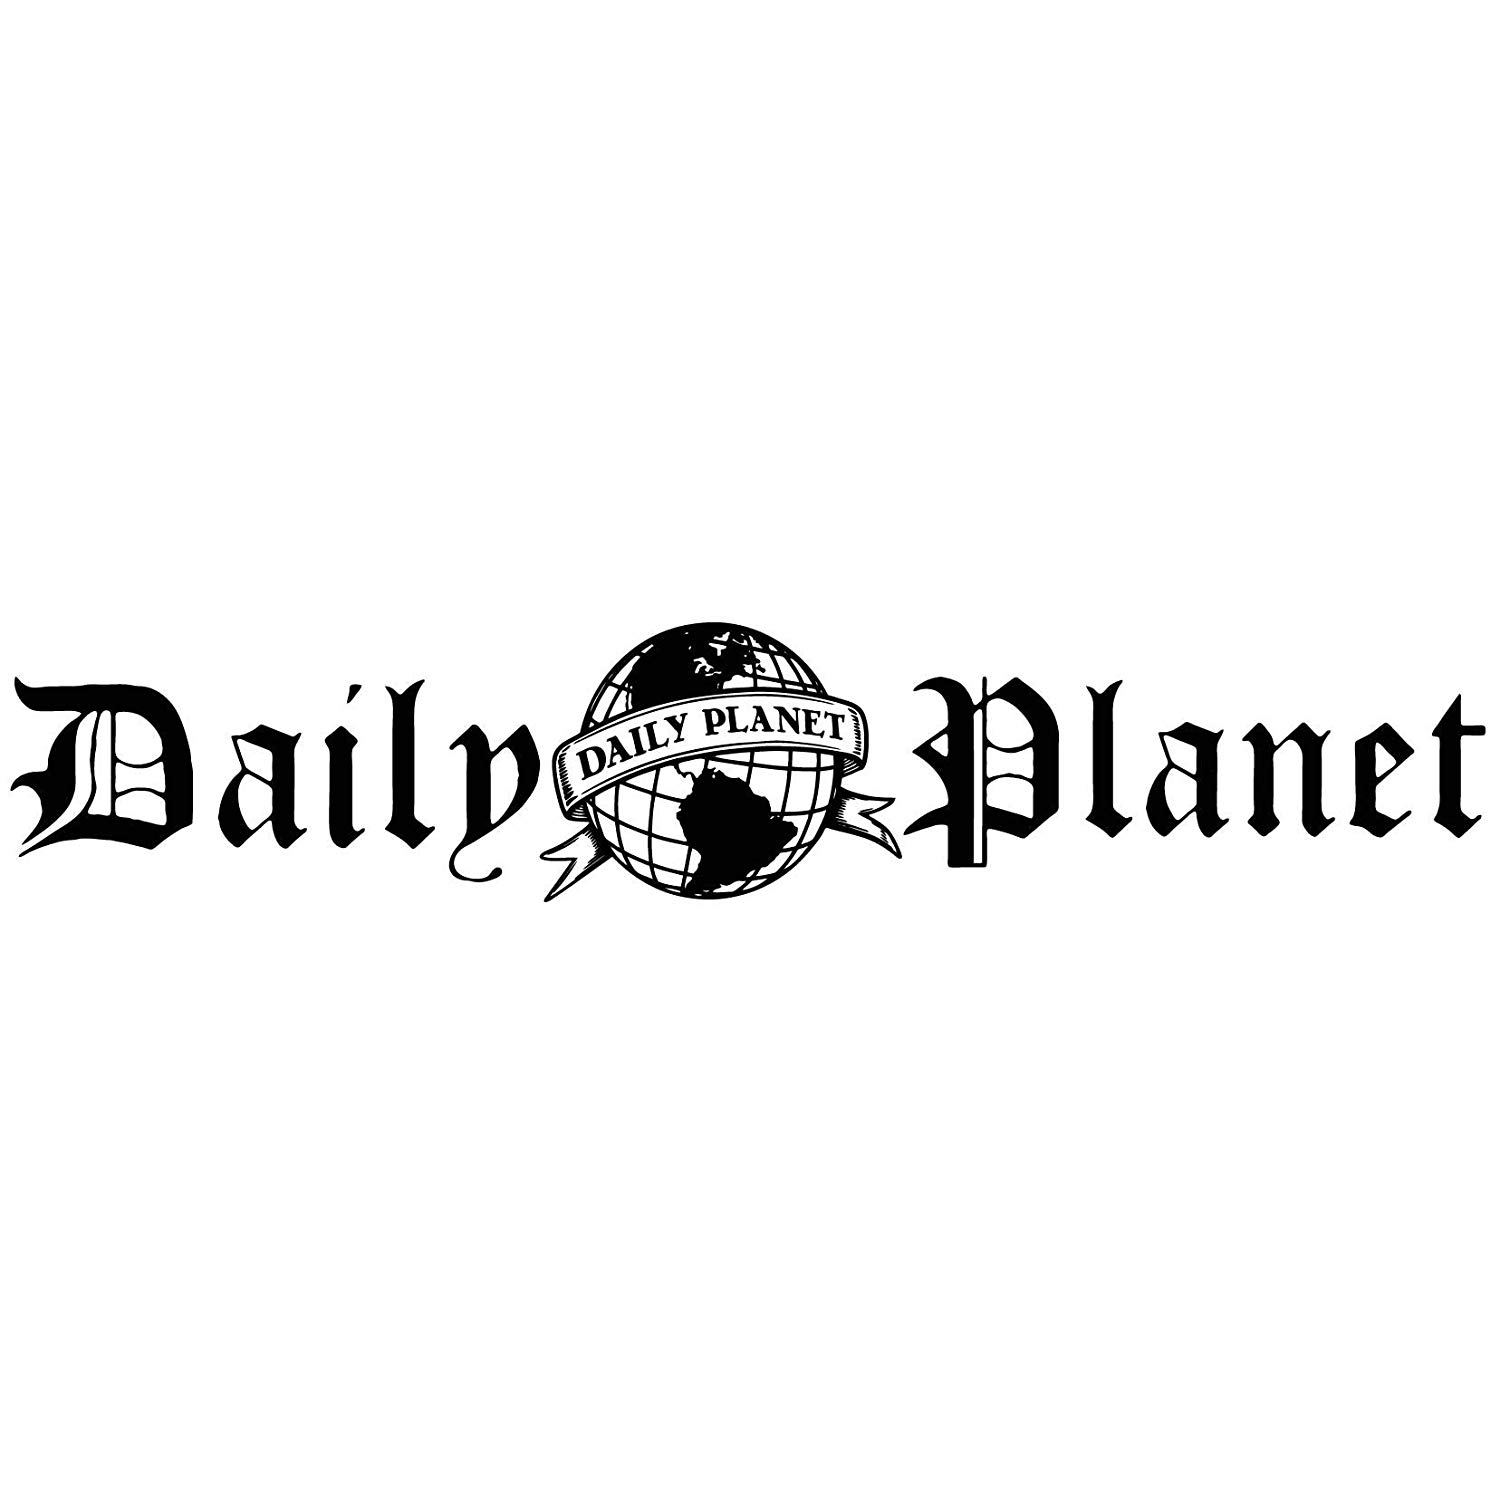 Daily Planet Logo - Amazon.com: Daily Planet Logo - Vinyl Decal Sticker - For wall ...